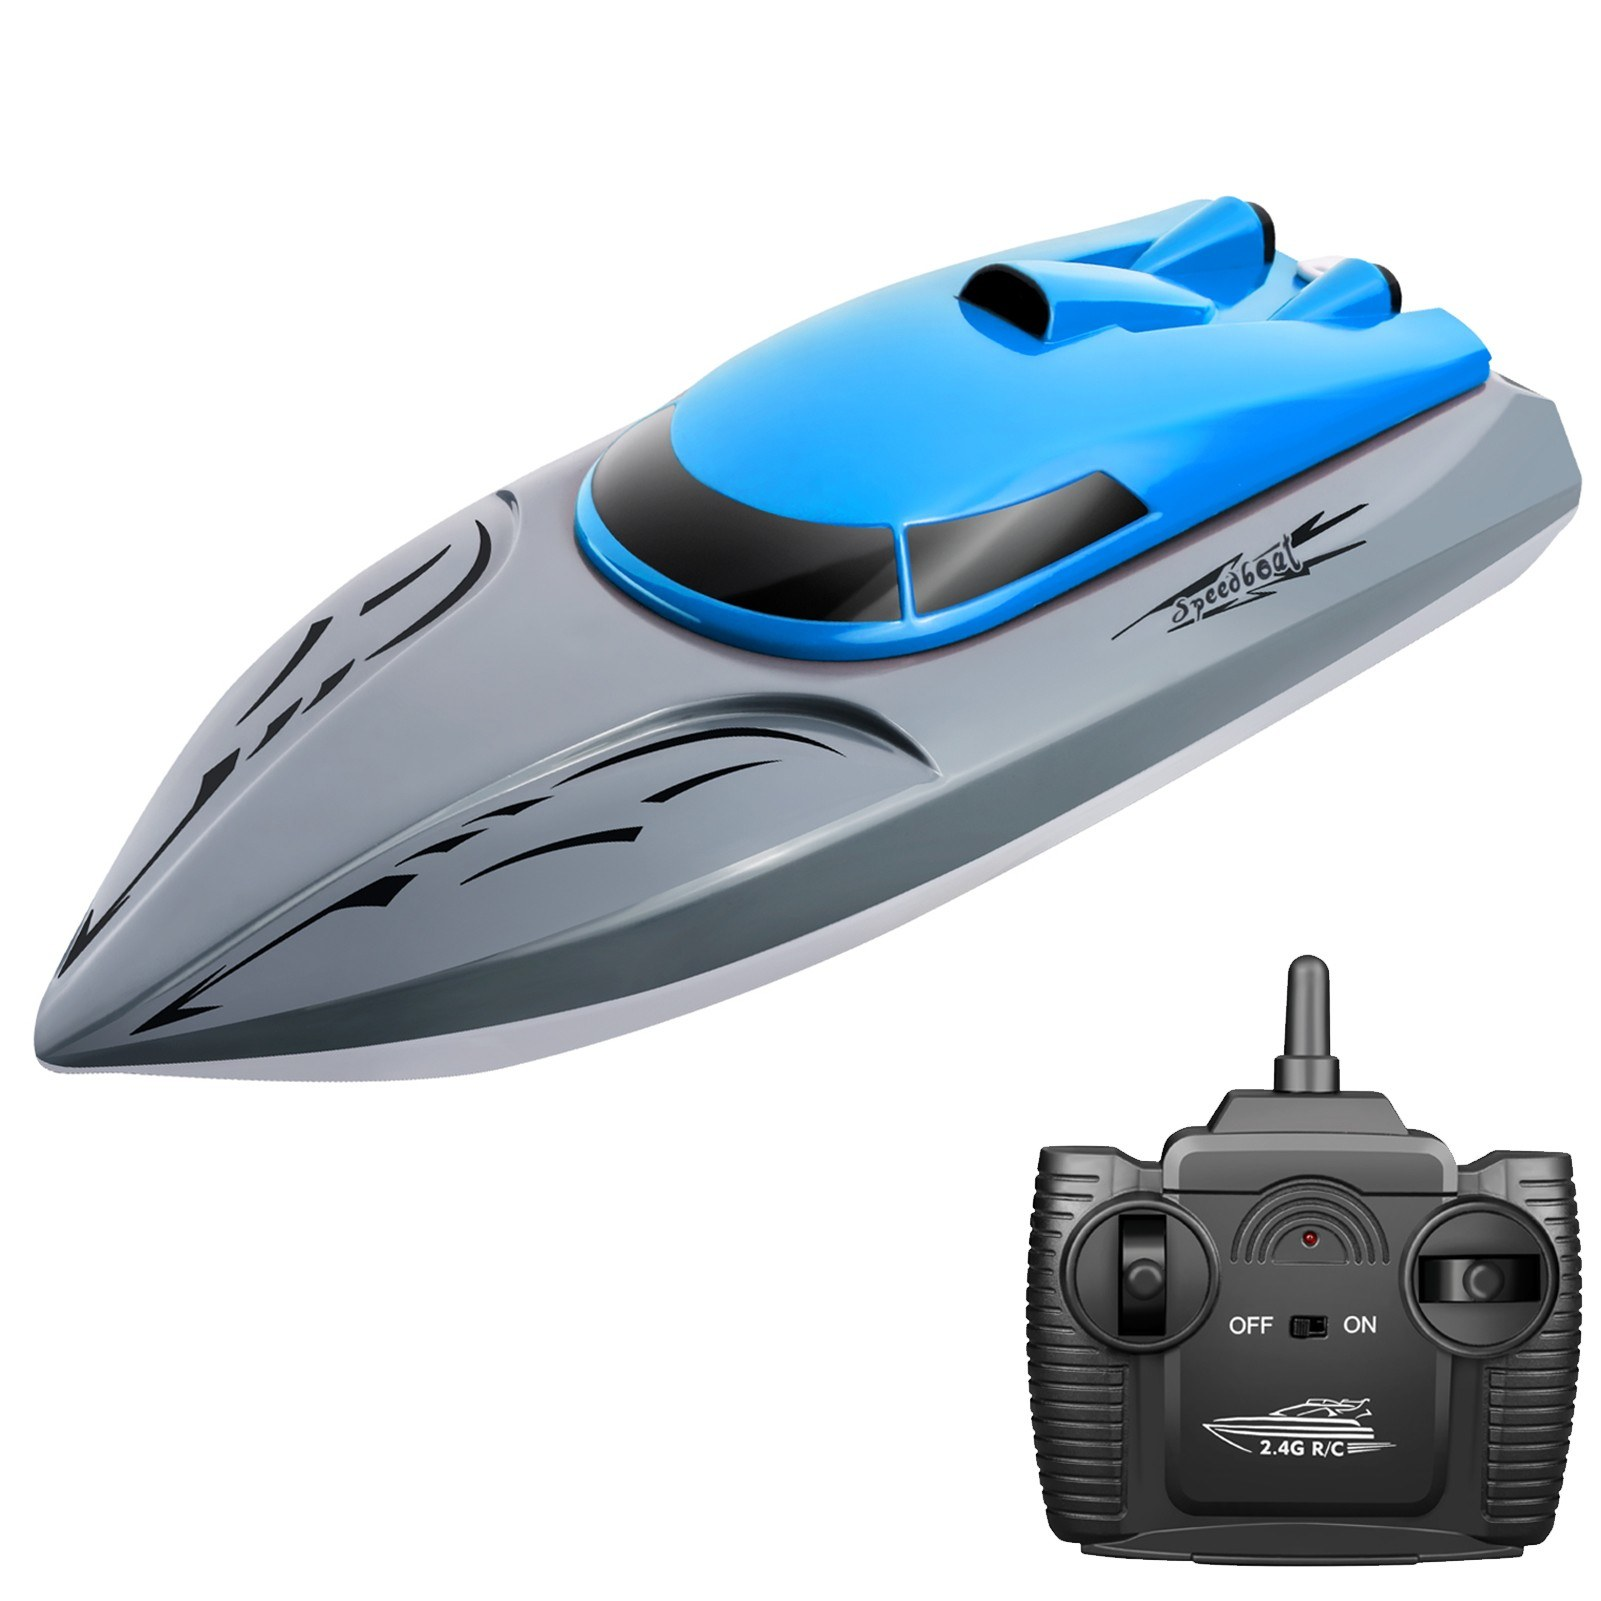 Tomtop - 54% OFF 806 2.4G RC Boat 20KM/h Waterproof Toy High Speed RC Boat, Free Shipping $21.99